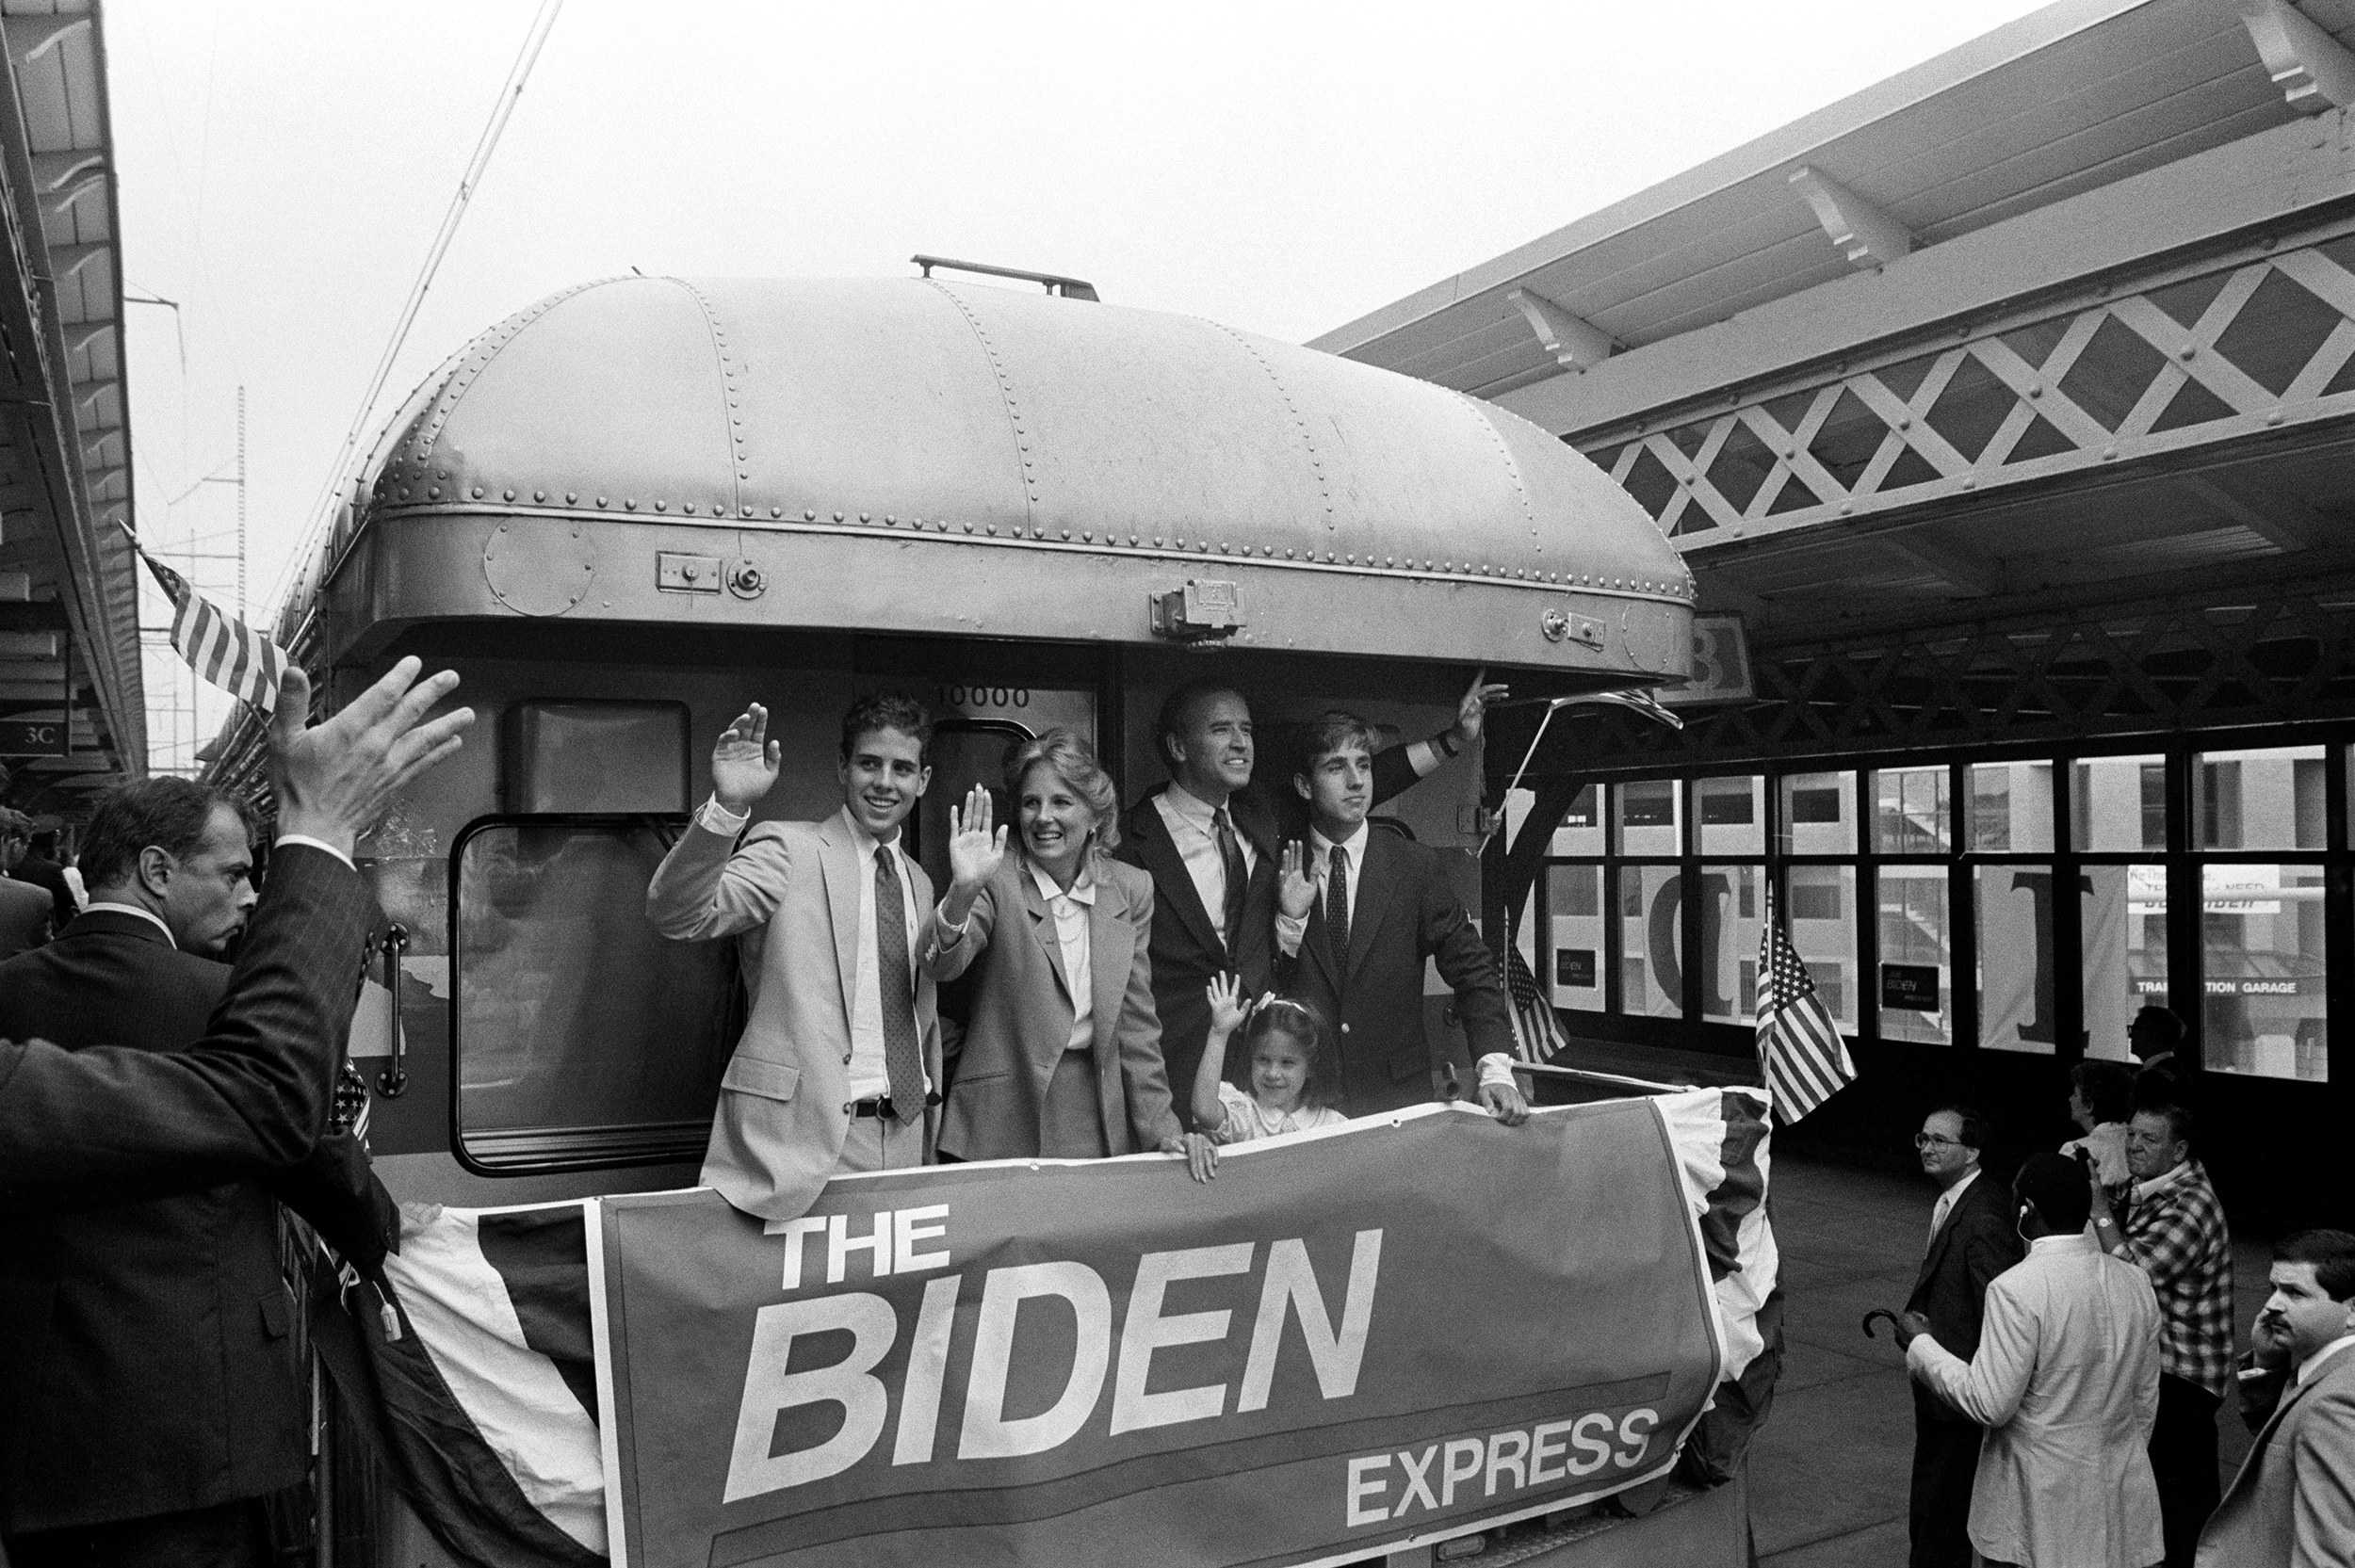 An archival image of the Bidens on a bus in the 80s